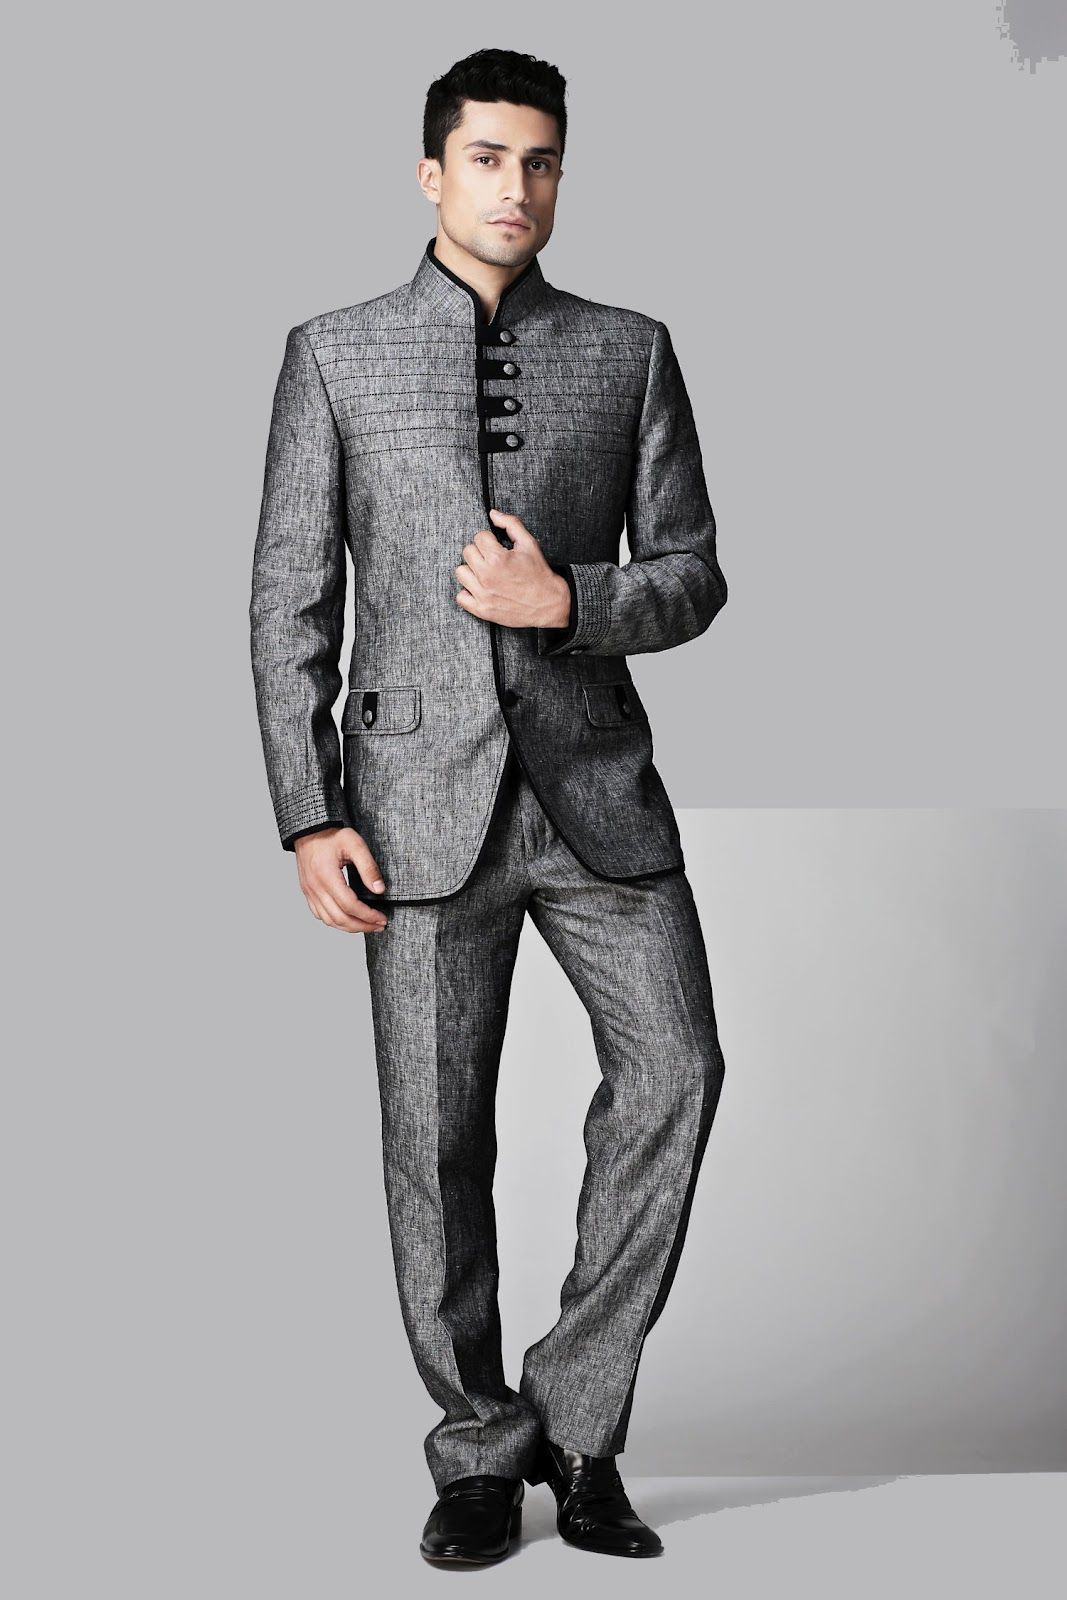 Tips When Choosing Mens Suits For Weddings